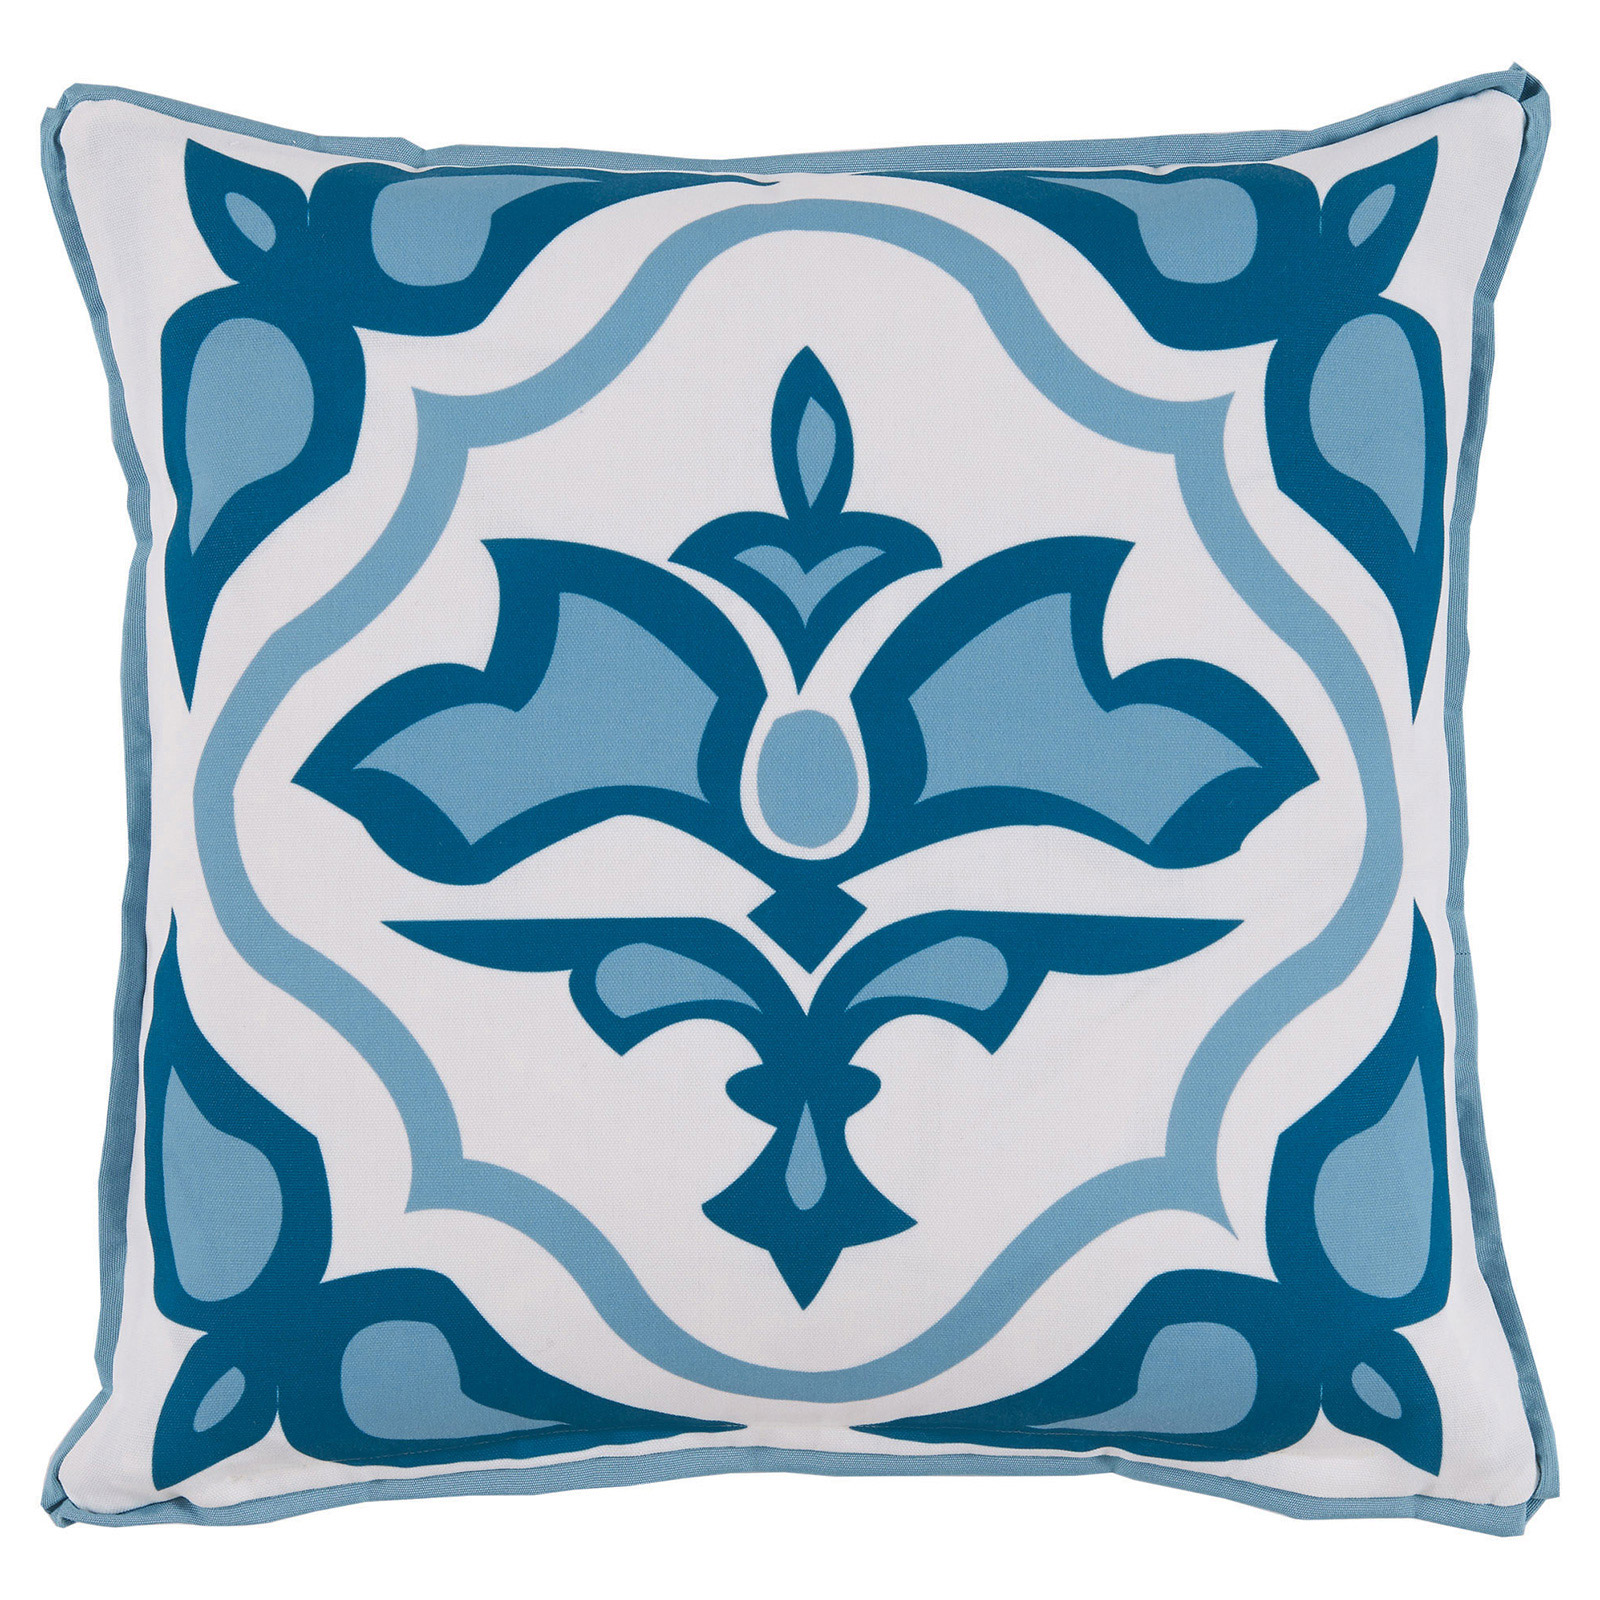 Julie Regency Abstract Sky Blue Outdoor Pillow - 20x20